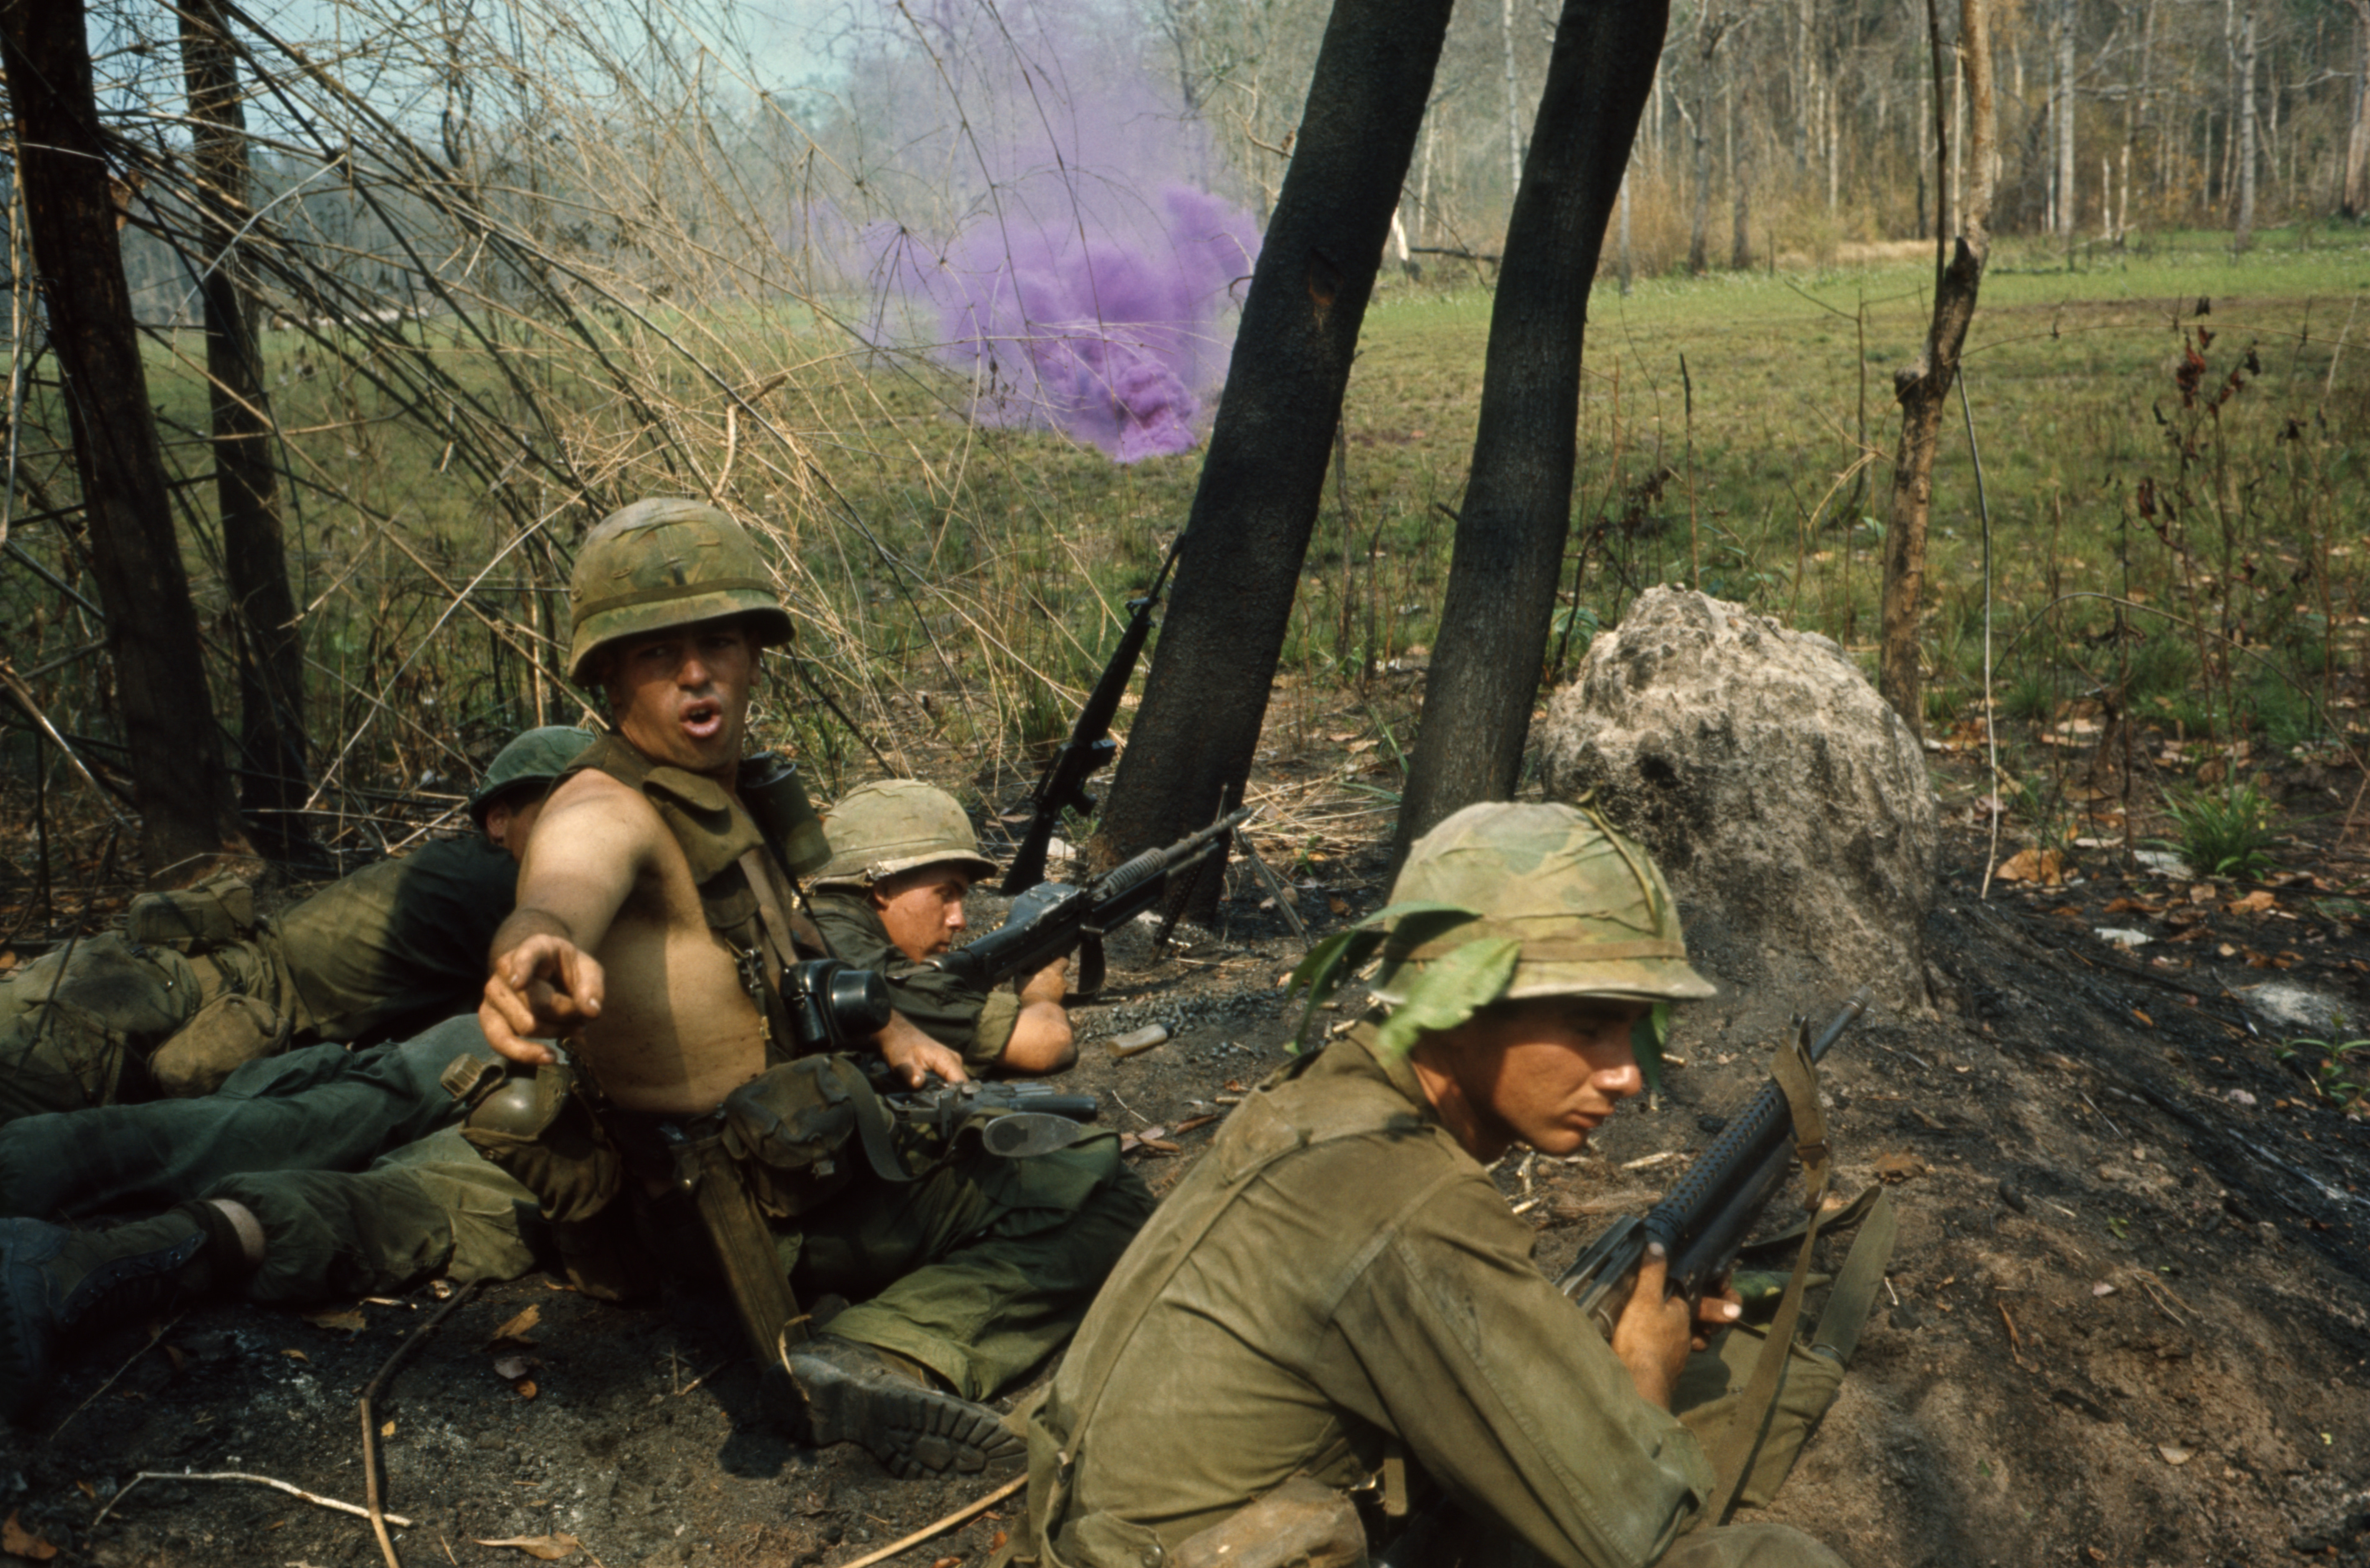 vietnam war facts battles pictures videos com operation byrd the vietnam war american ier firing war vietnam